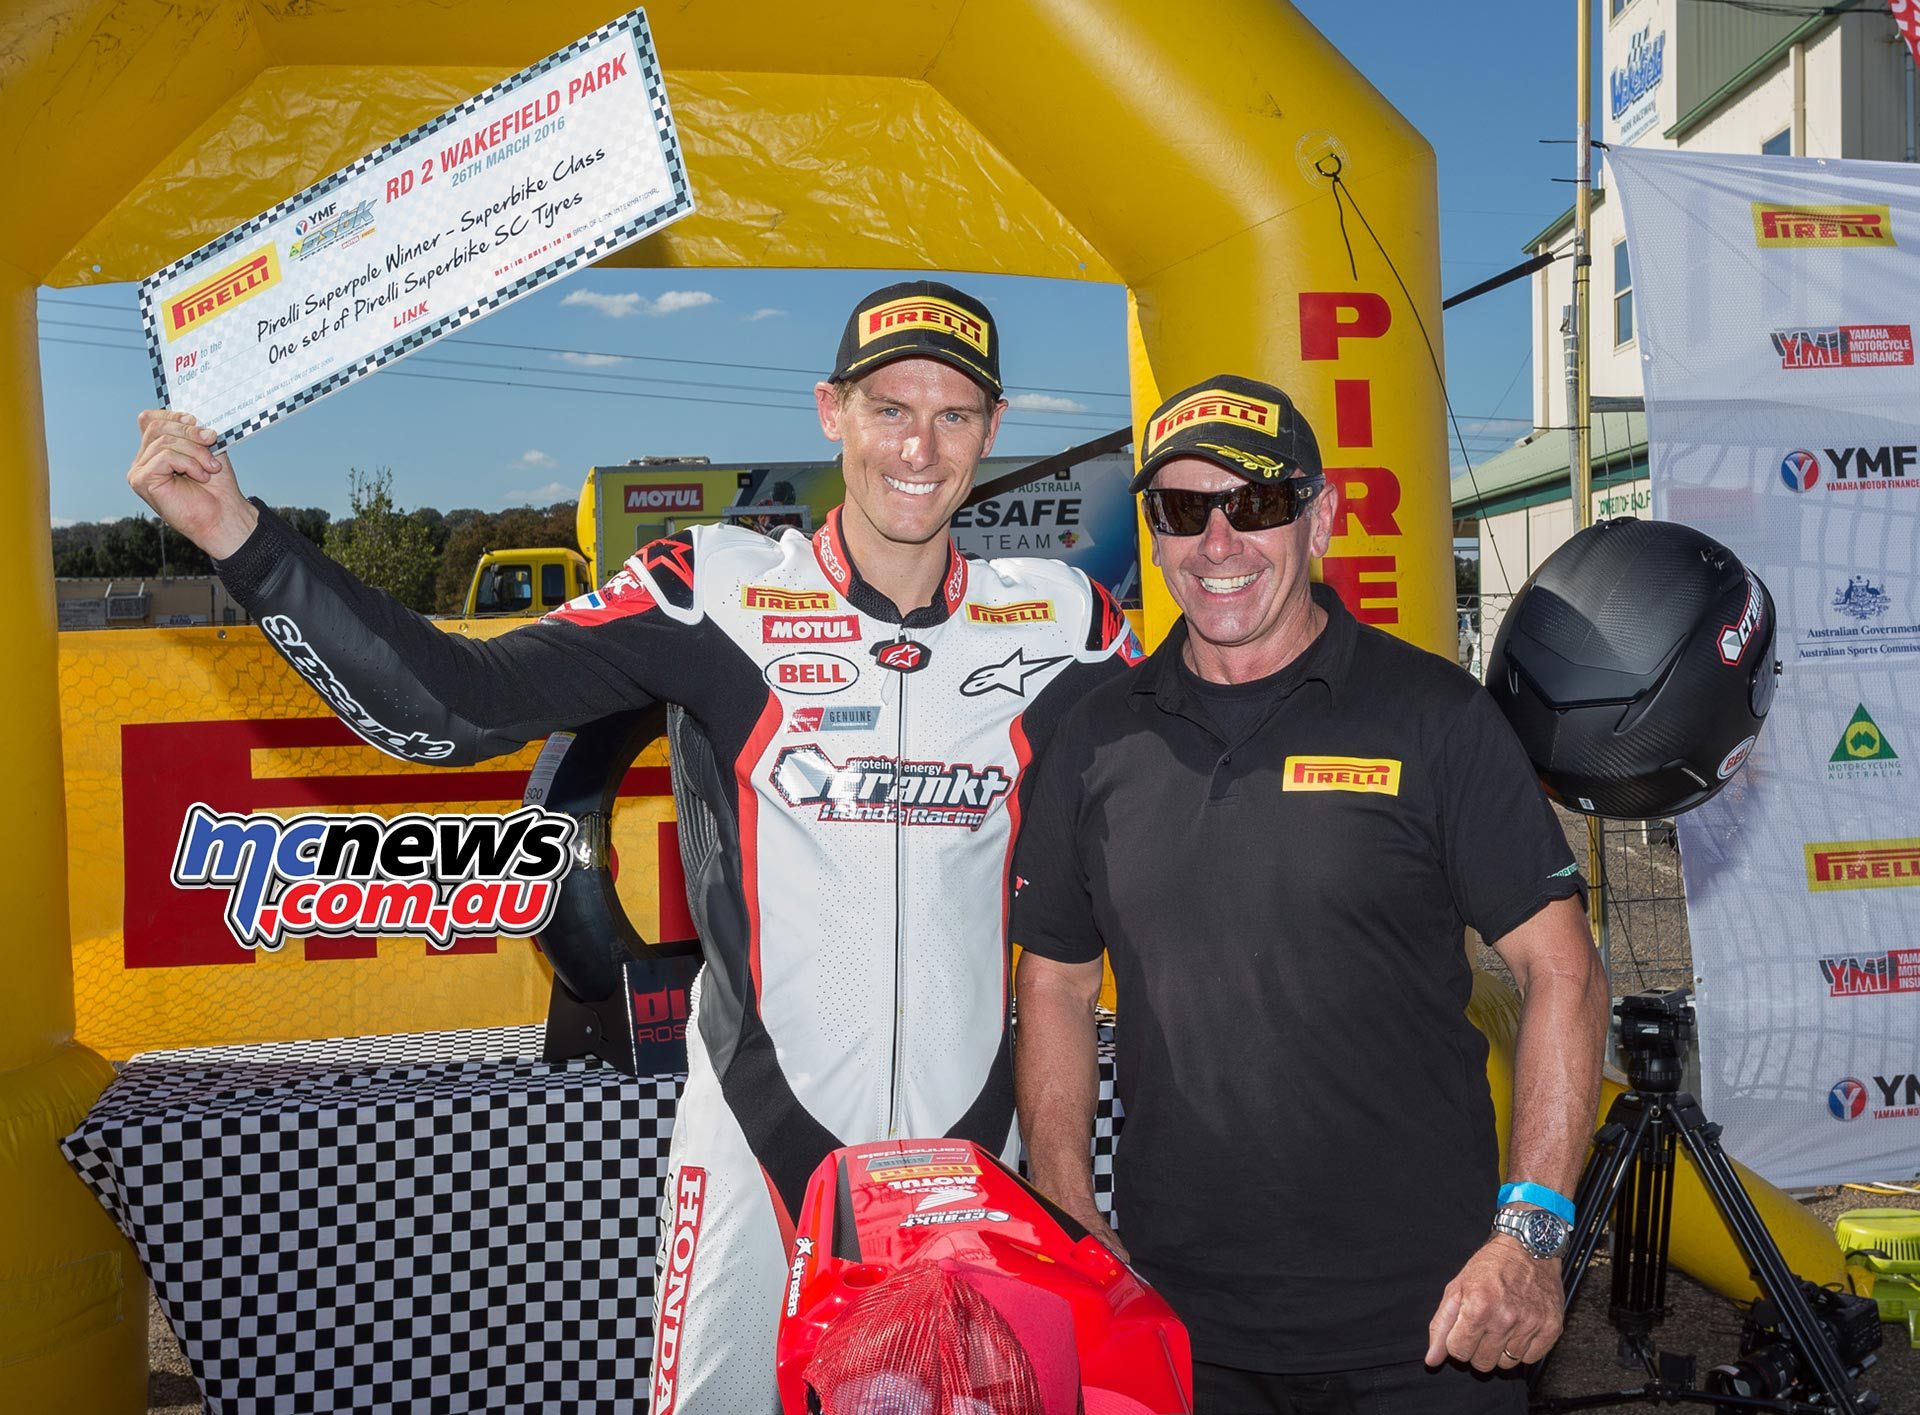 Troy Herfoss takes Superpole - ASBK 2016 - Round Two - Wakefield Park - Image by TBG